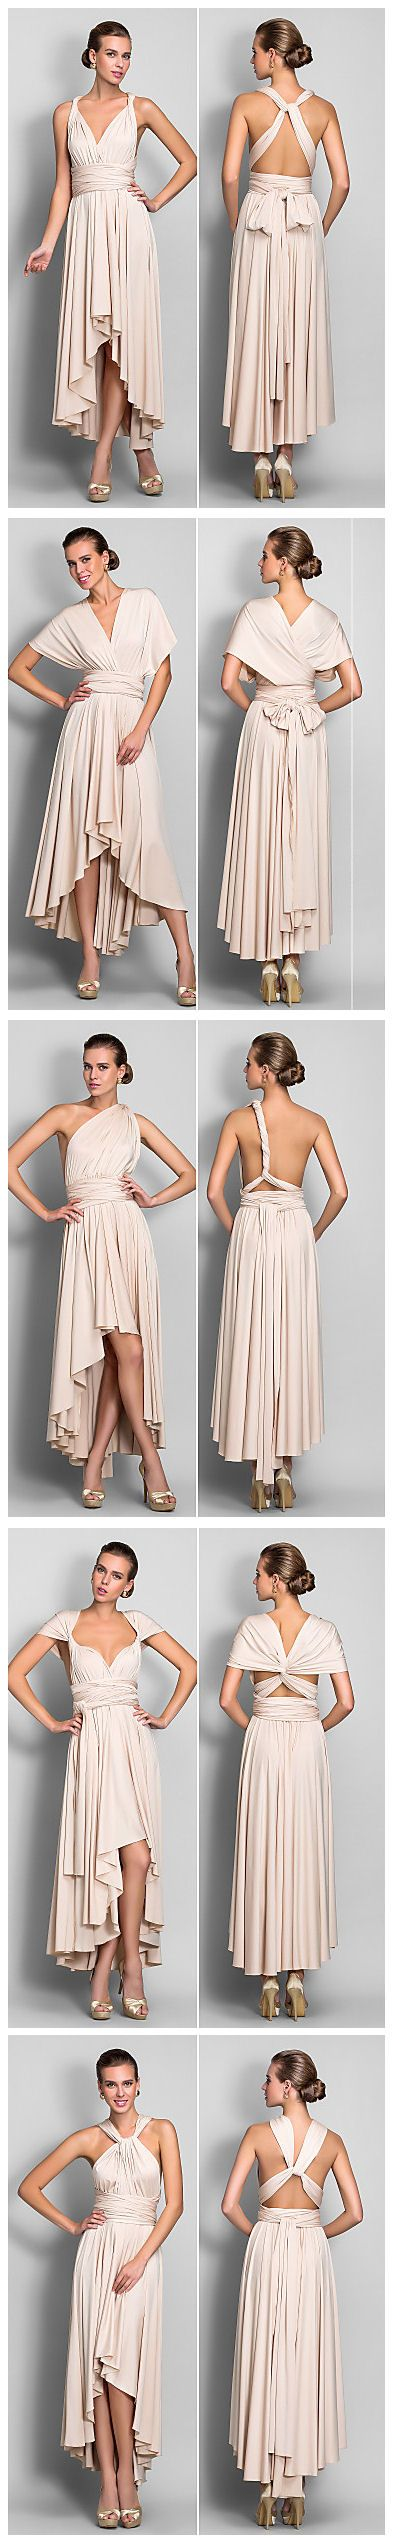 Blush Convertible Maxi Dress ♥ https://www.pinterest.com/hattiereegans/